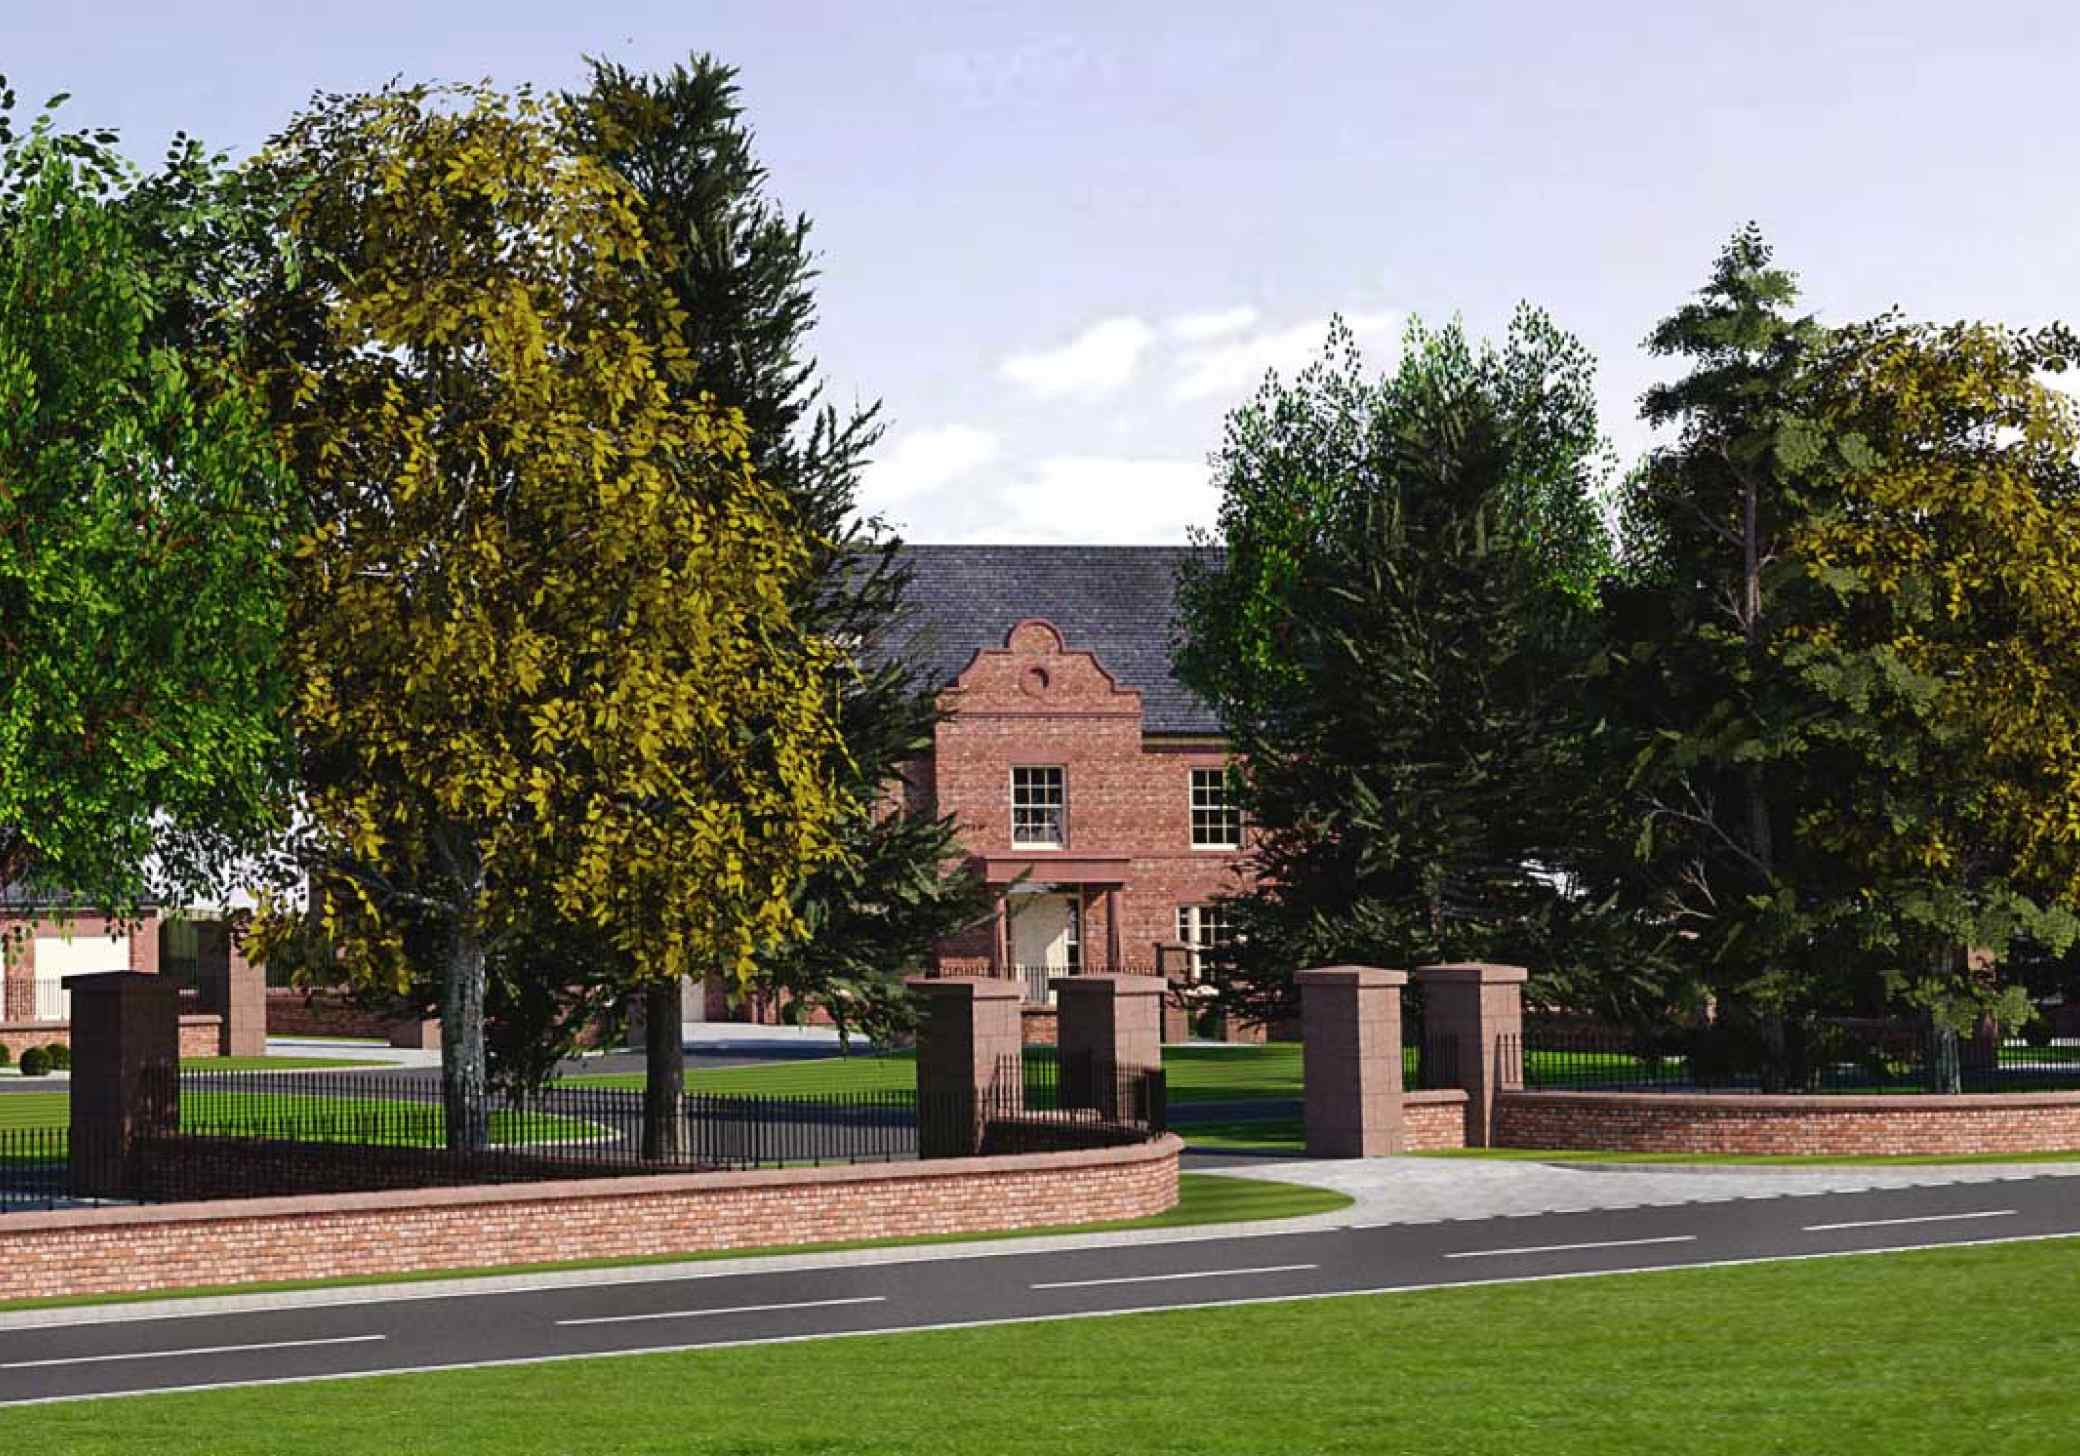 New Development at Former Red Lion, Eaton, Tarporley, Cheshire